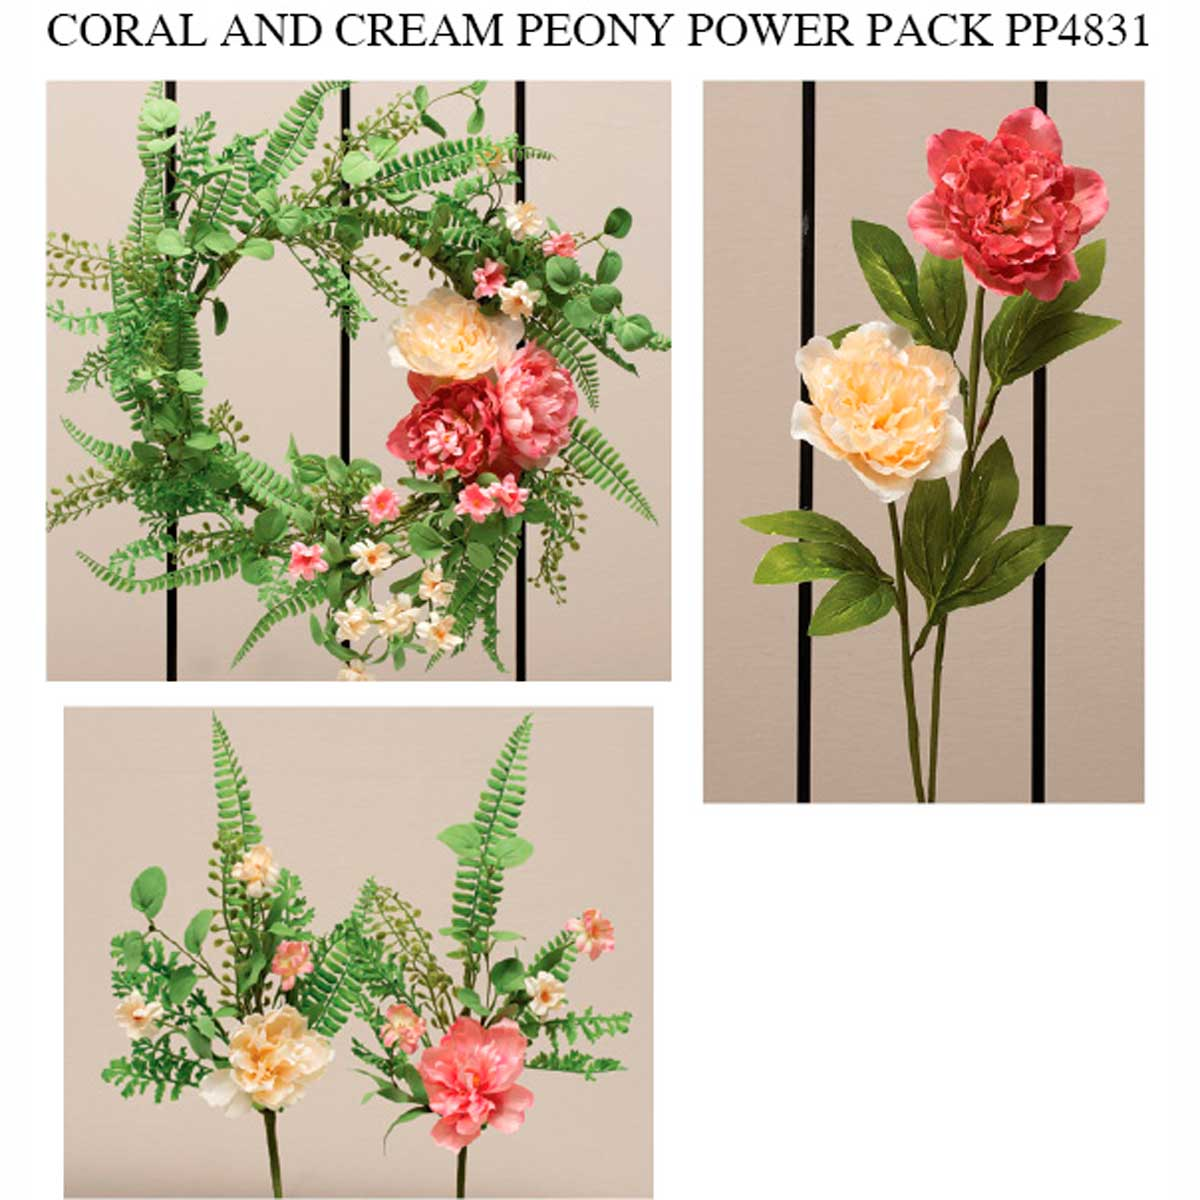 PEONY CORAL CREAM POWER PACK 19 UNITS